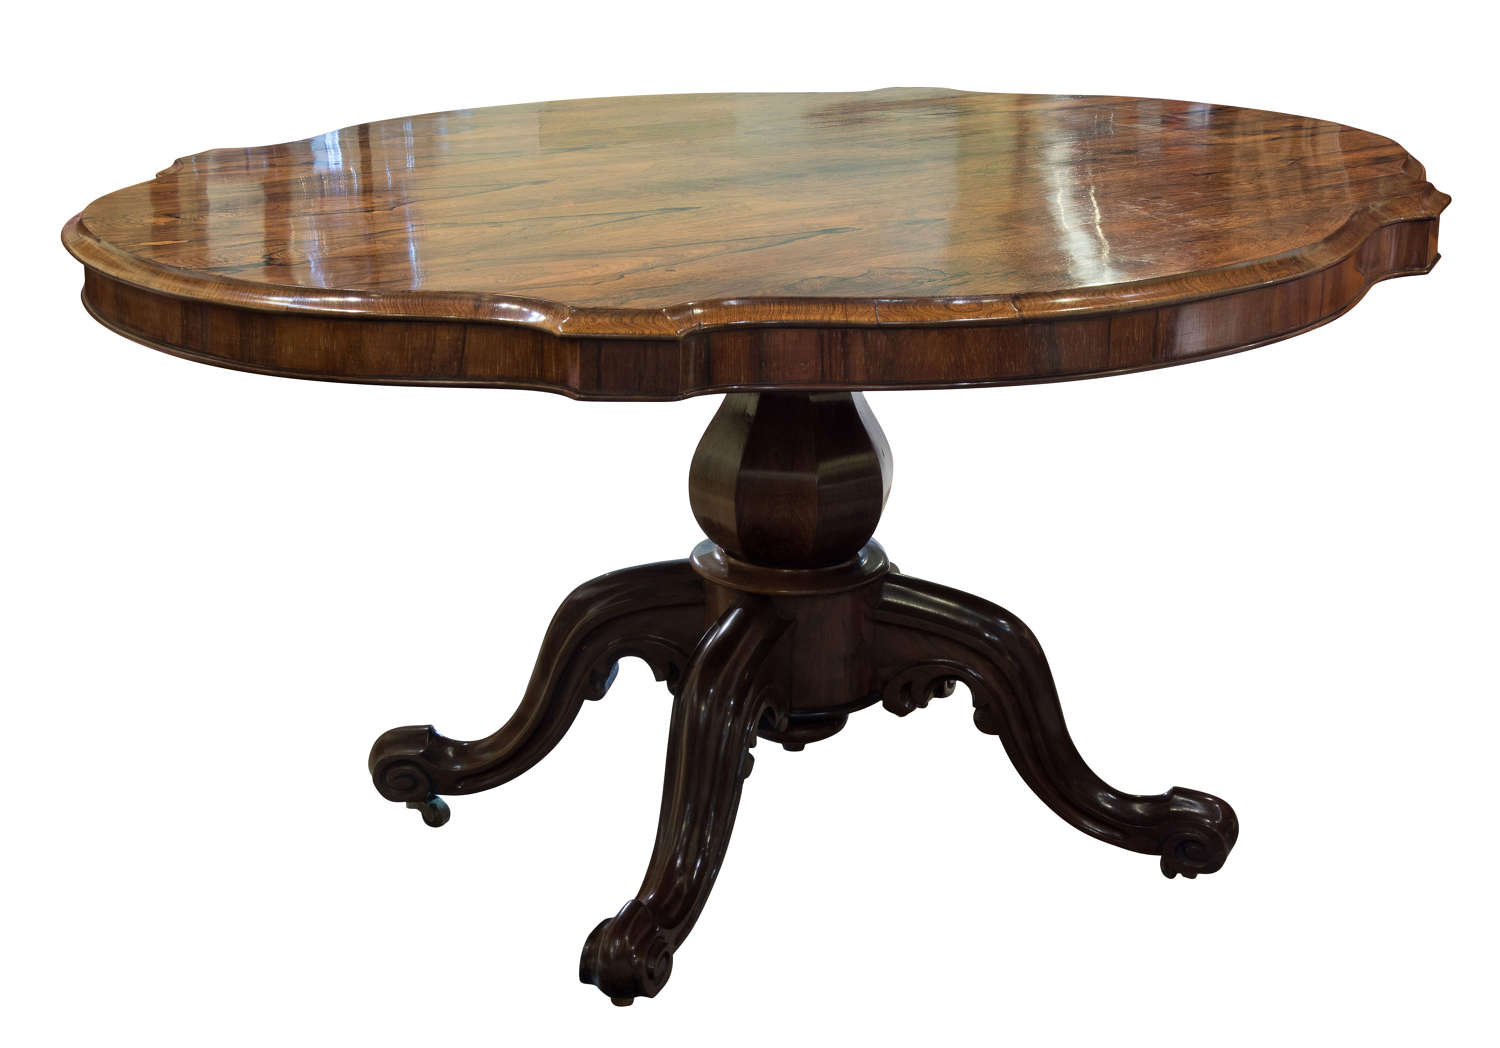 19thC shaped oval rosewood centre table c1860